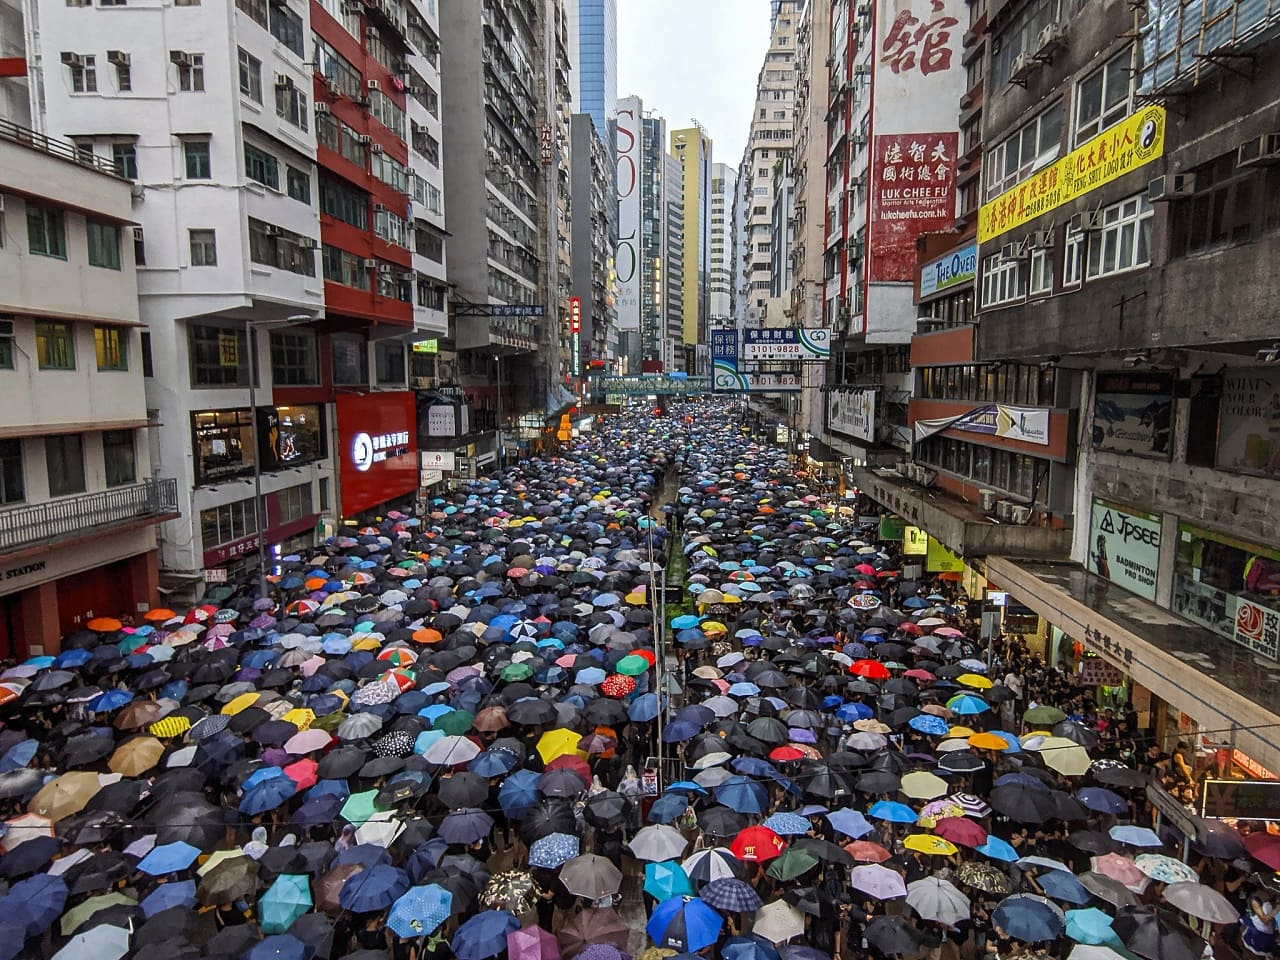 Hongkong-Regenschirmproteste-mass-protests-demonstrations-uprising-riots-rally-insurrection-Sonderverwaltungszone-Kritisches-Netzwerk-Hong-Kong-extradition-bill